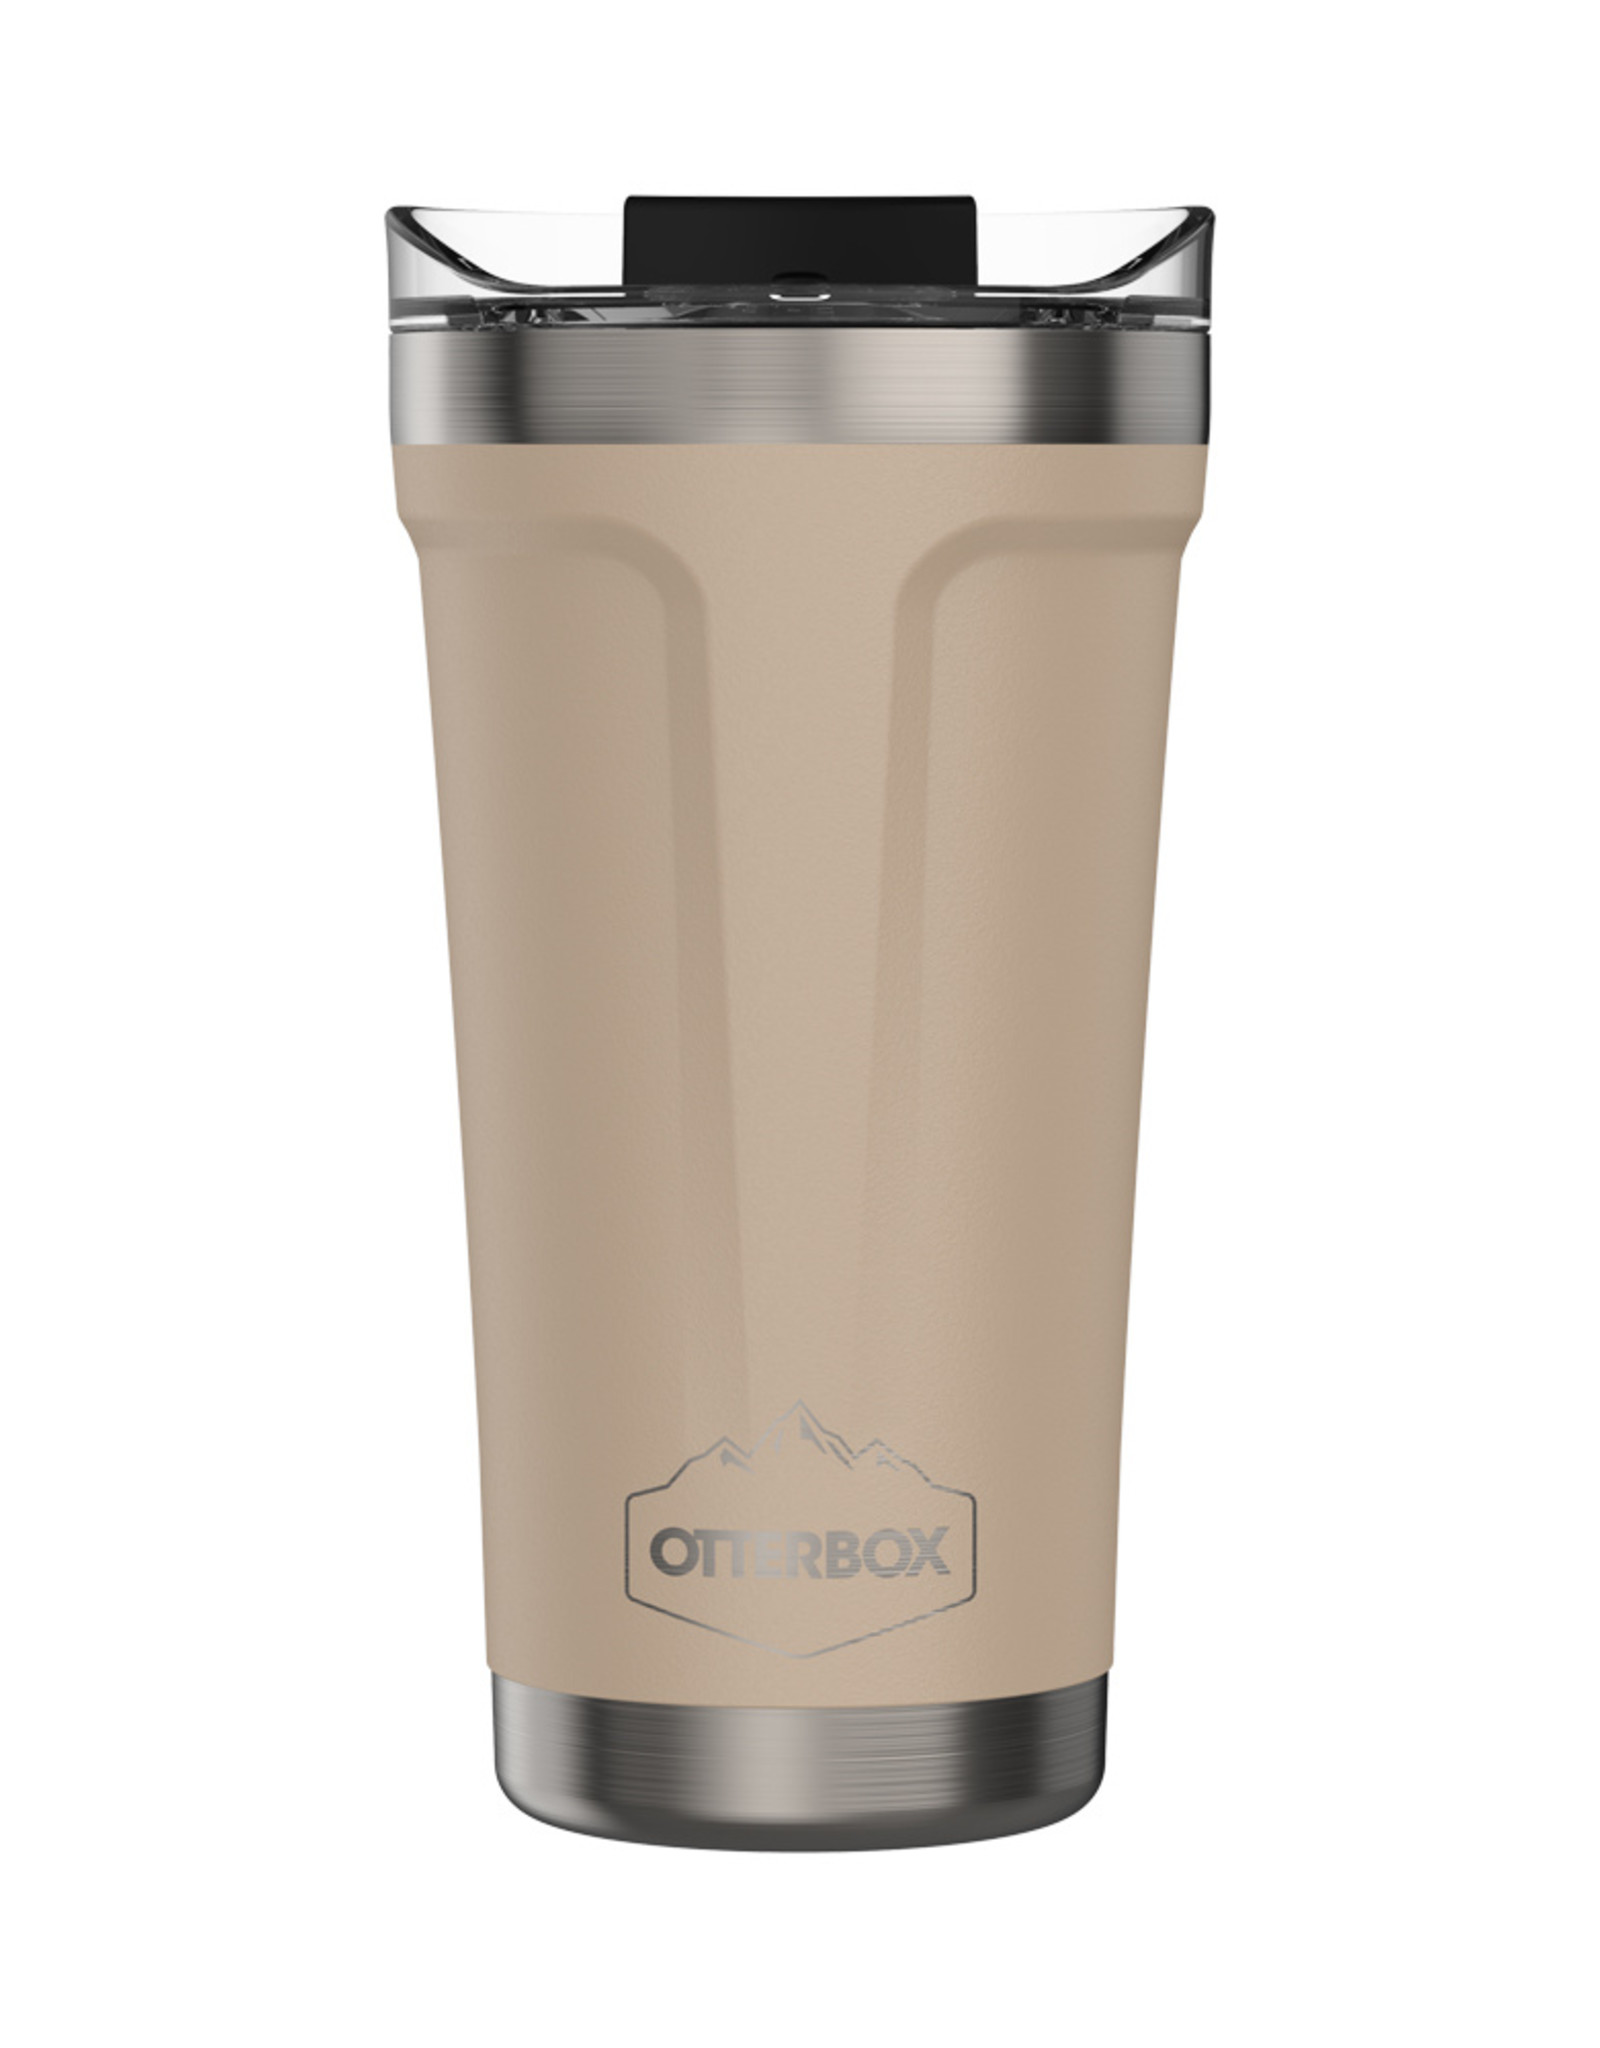 Otterbox Otterbox - Elevation Tumbler with Closed Lid 16 OZ Frappe (Stainless Steel/Bleached Sand) 102-0095